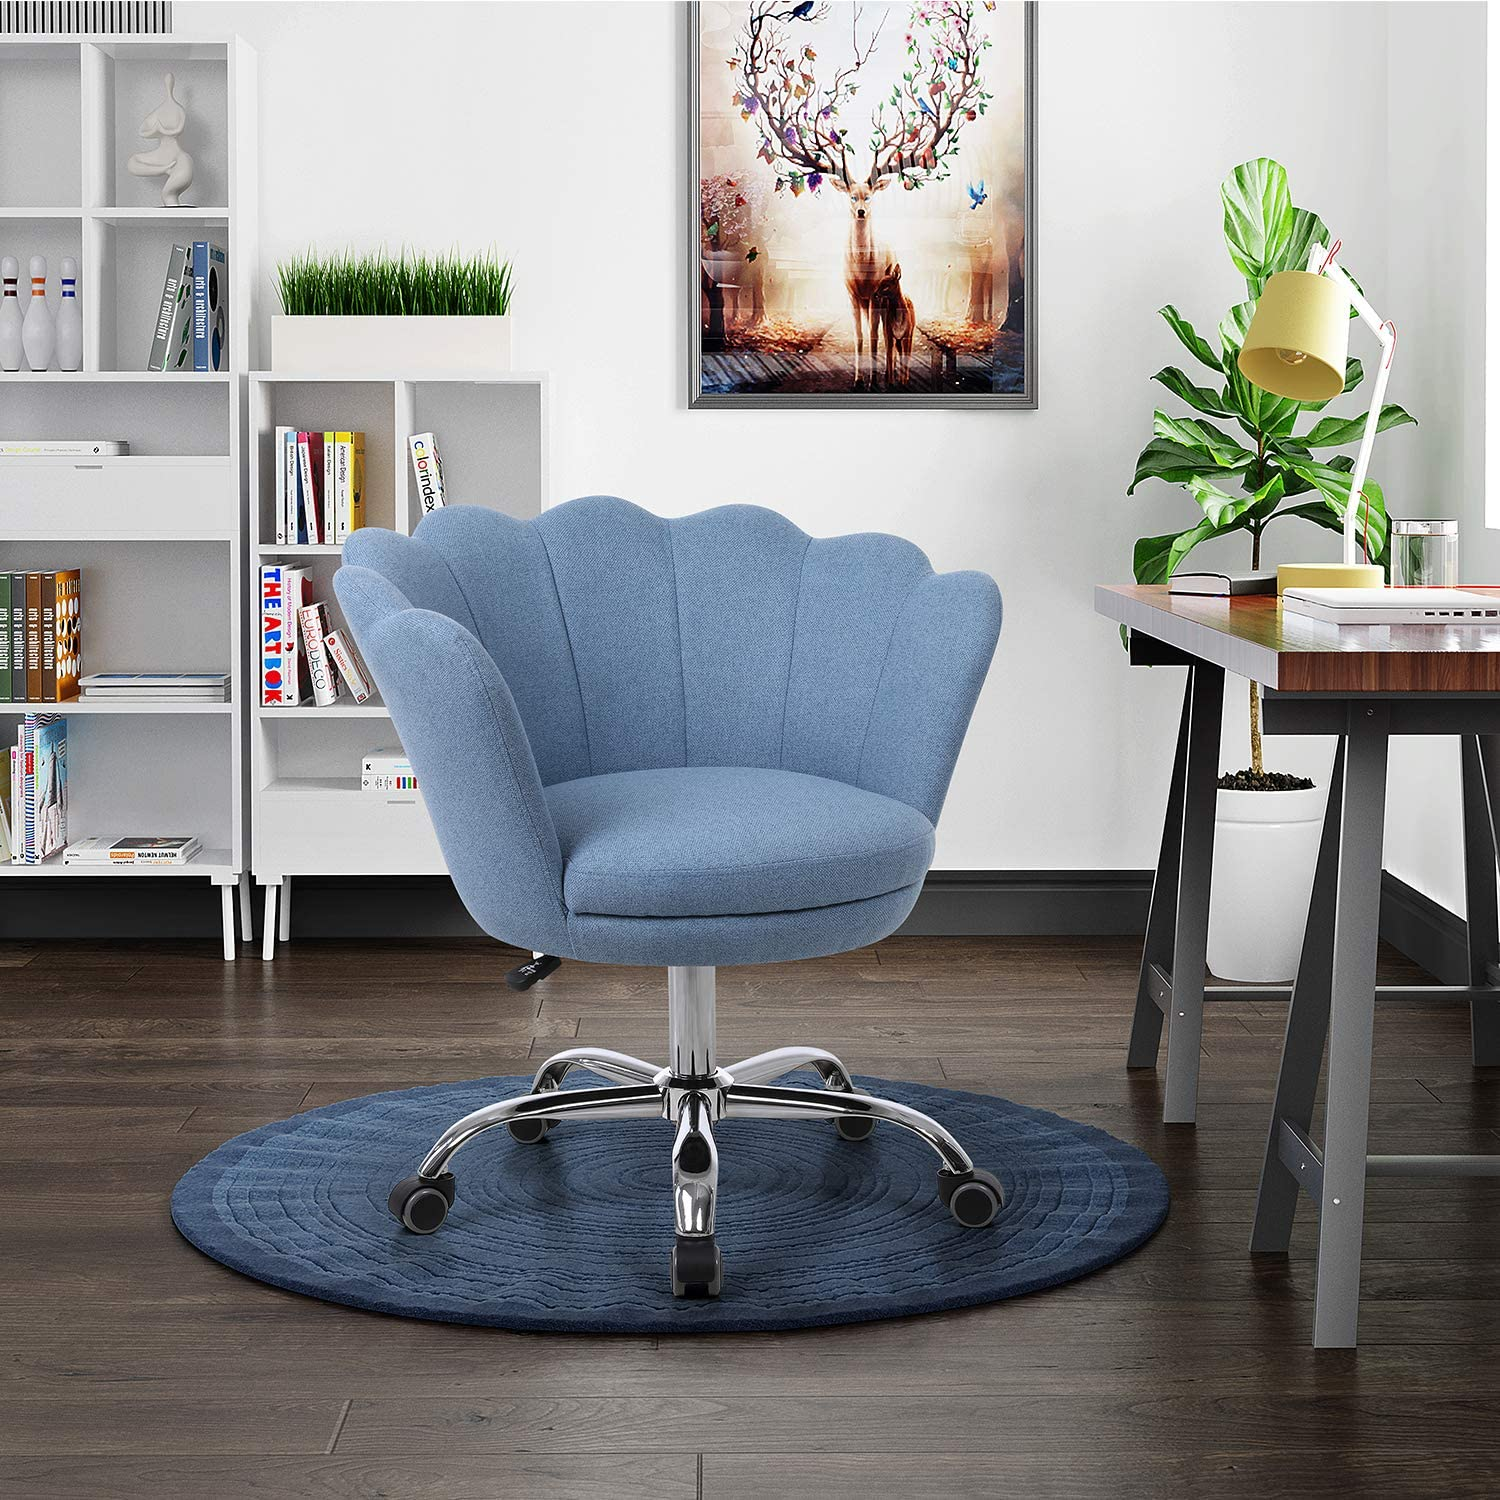 Henf Linen Fabric Accent Chair, Living Room Chair 360 Degree Swivel Shell Chair Home Office Desk Chair Modern Upholstered Vanity Chair with 5 Wheels for Bedroom Makeup (Blue)